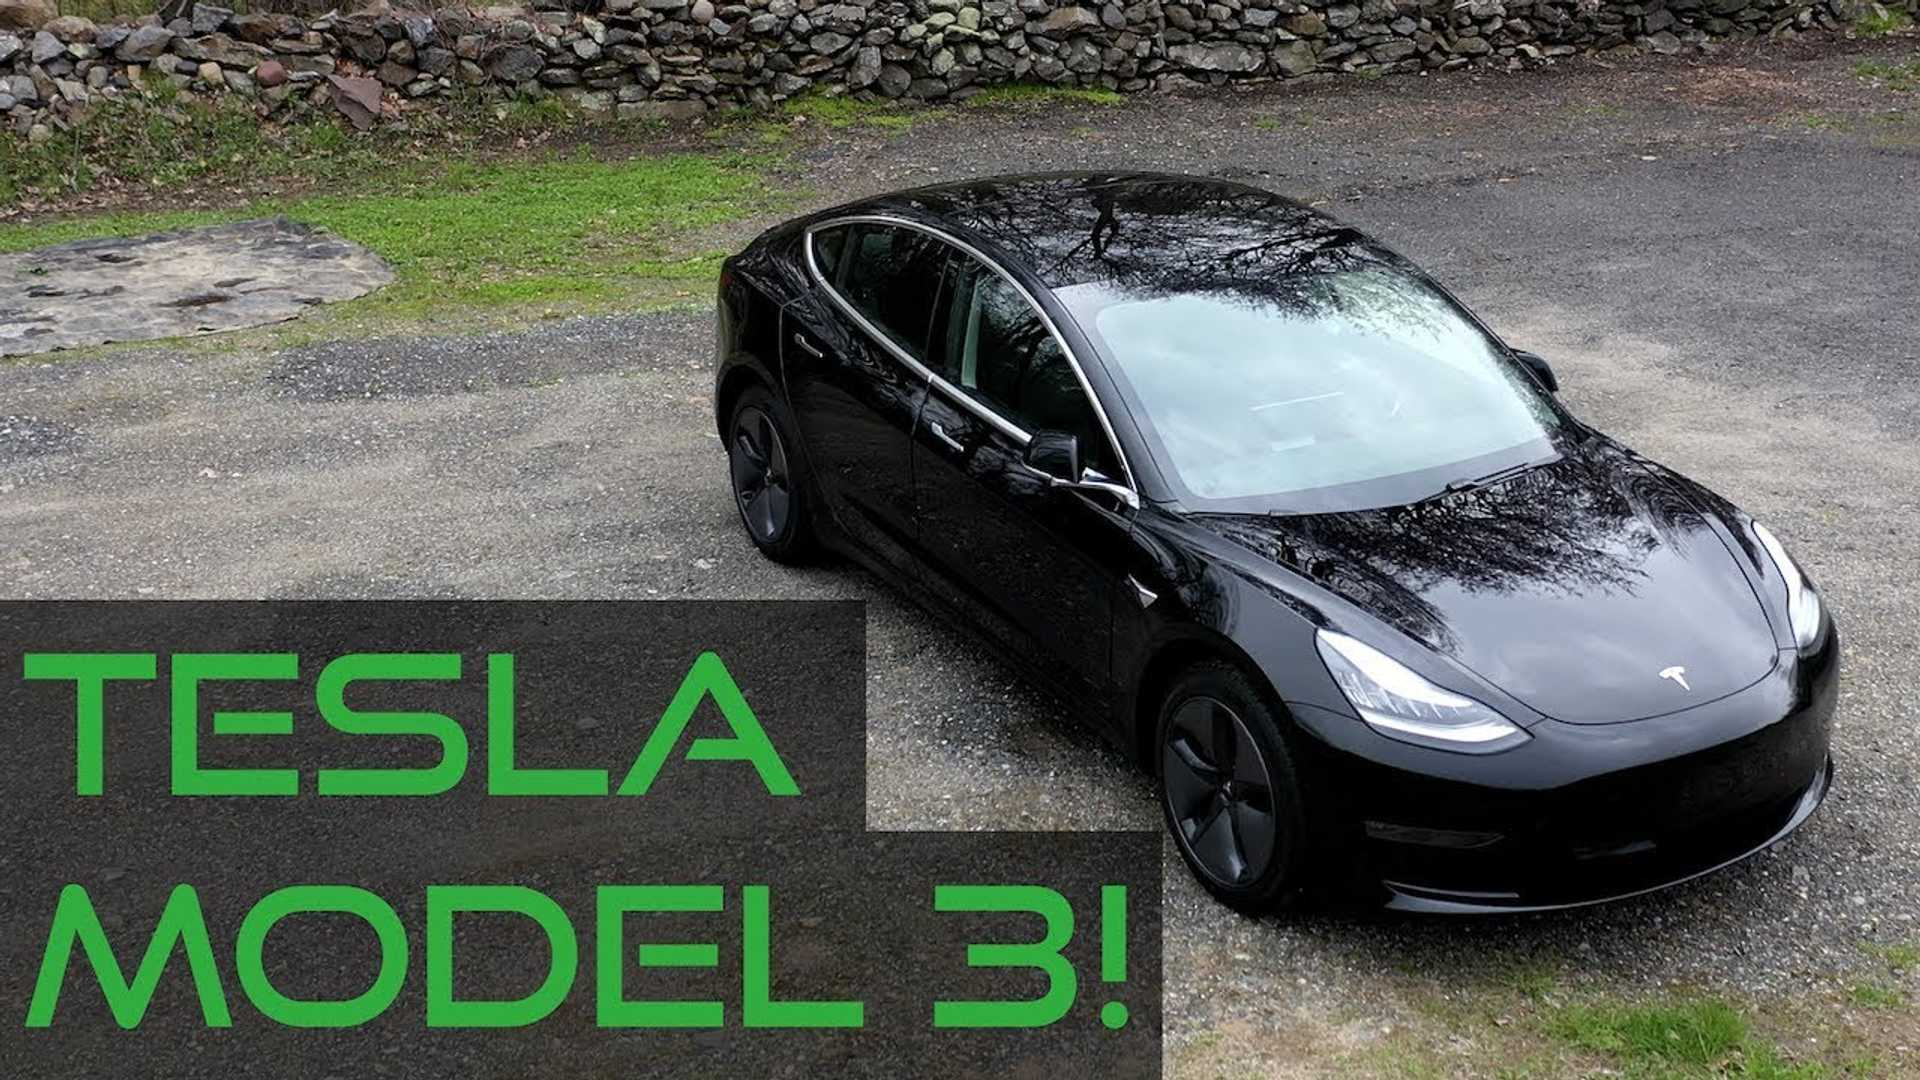 People Will Pay More For A Tesla Model 3 Due To The 'Tesla